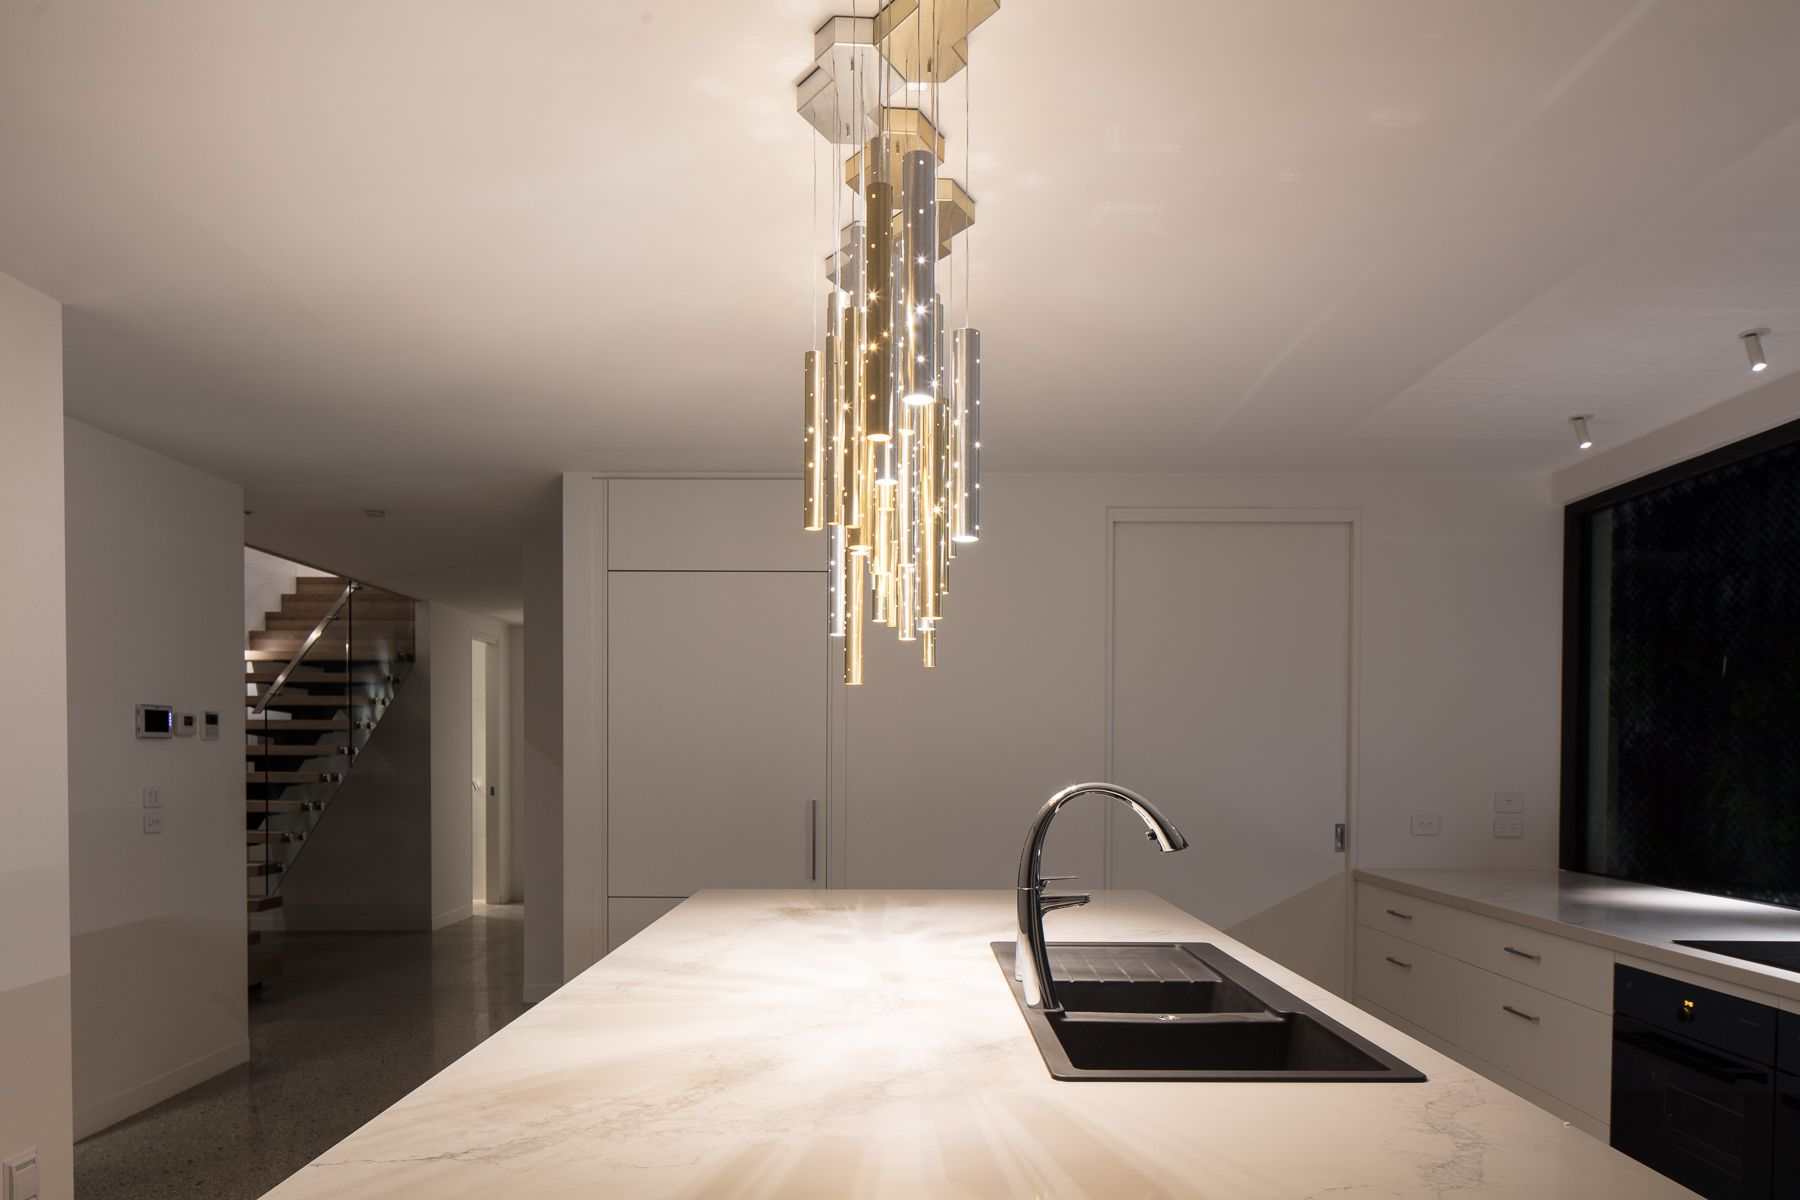 MINT - Townhouse Lighting Project (With images) | Home ...